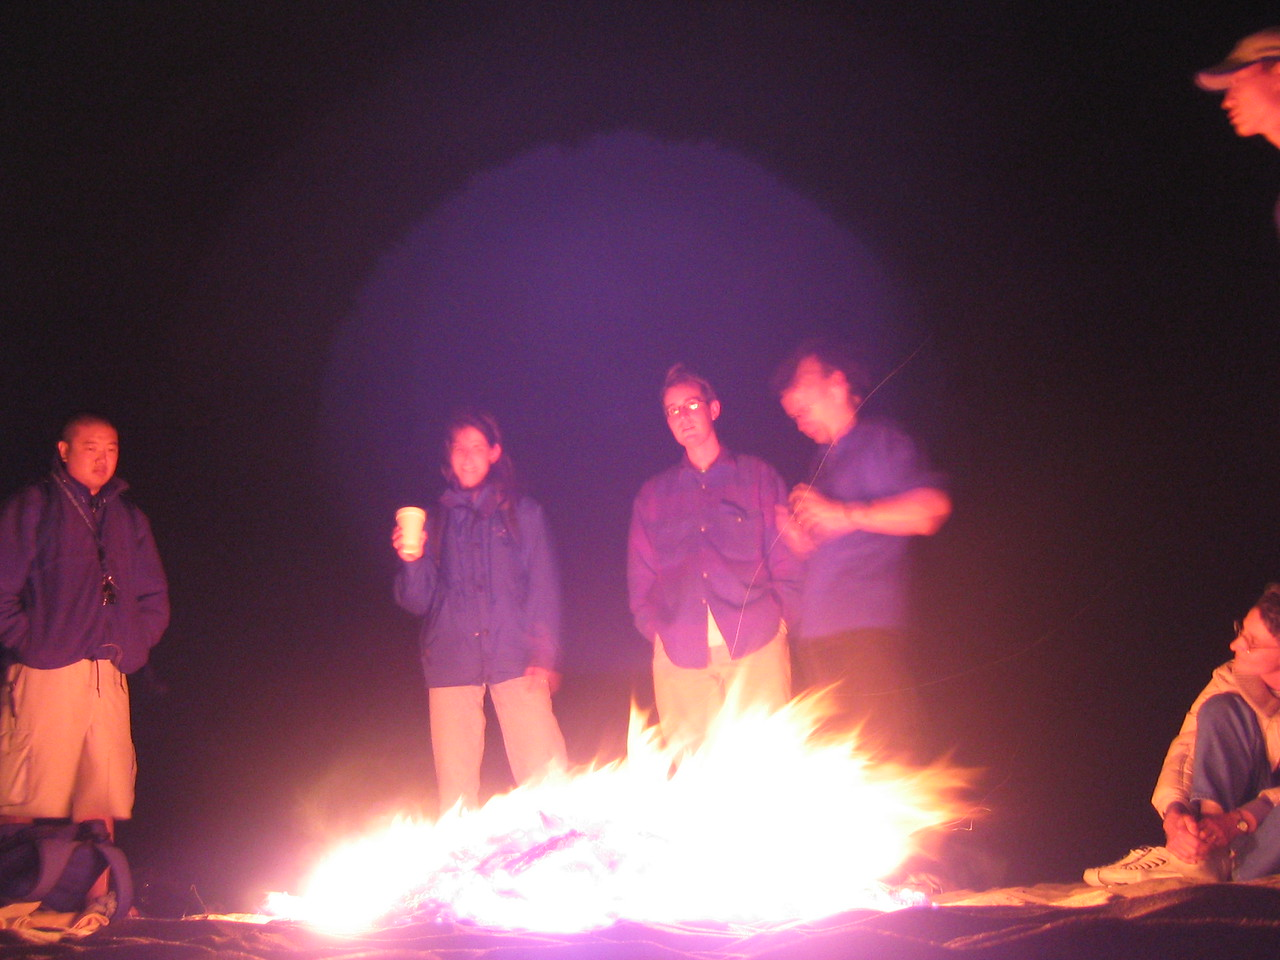 Saying so around fire - Group 2 overexposed